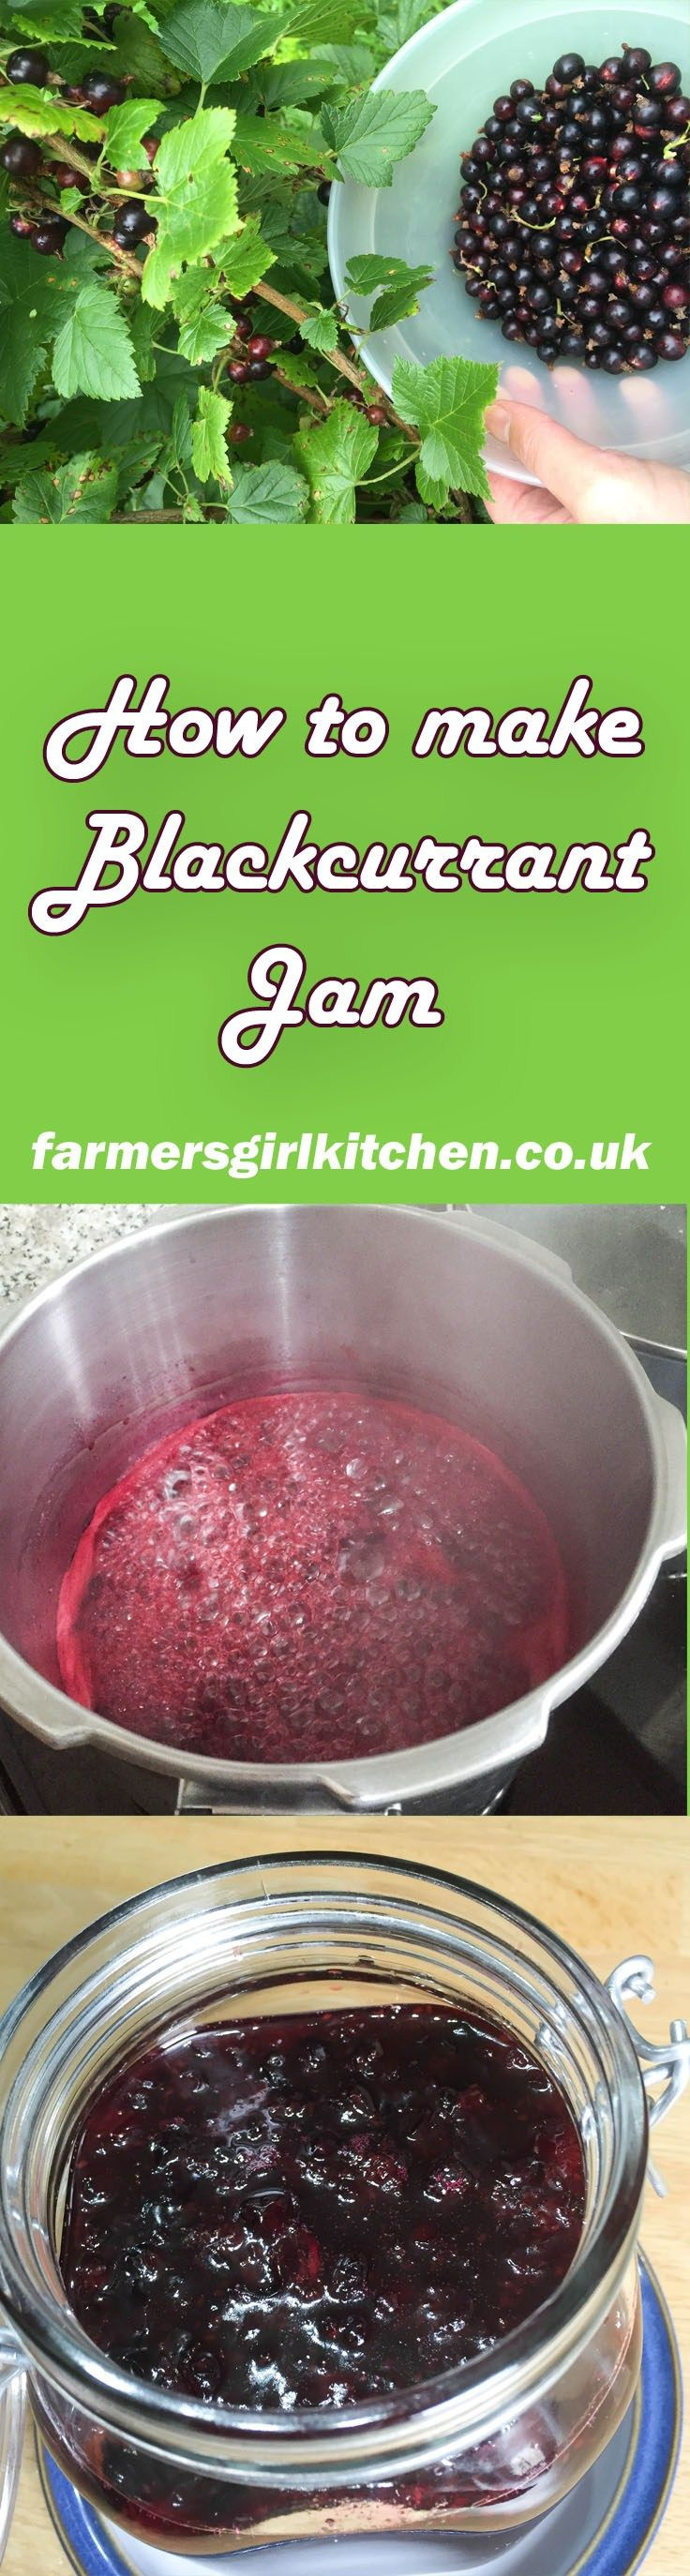 A simple recipe for blackcurrant jam, one of the easiest jams to make, ideal for beginners.